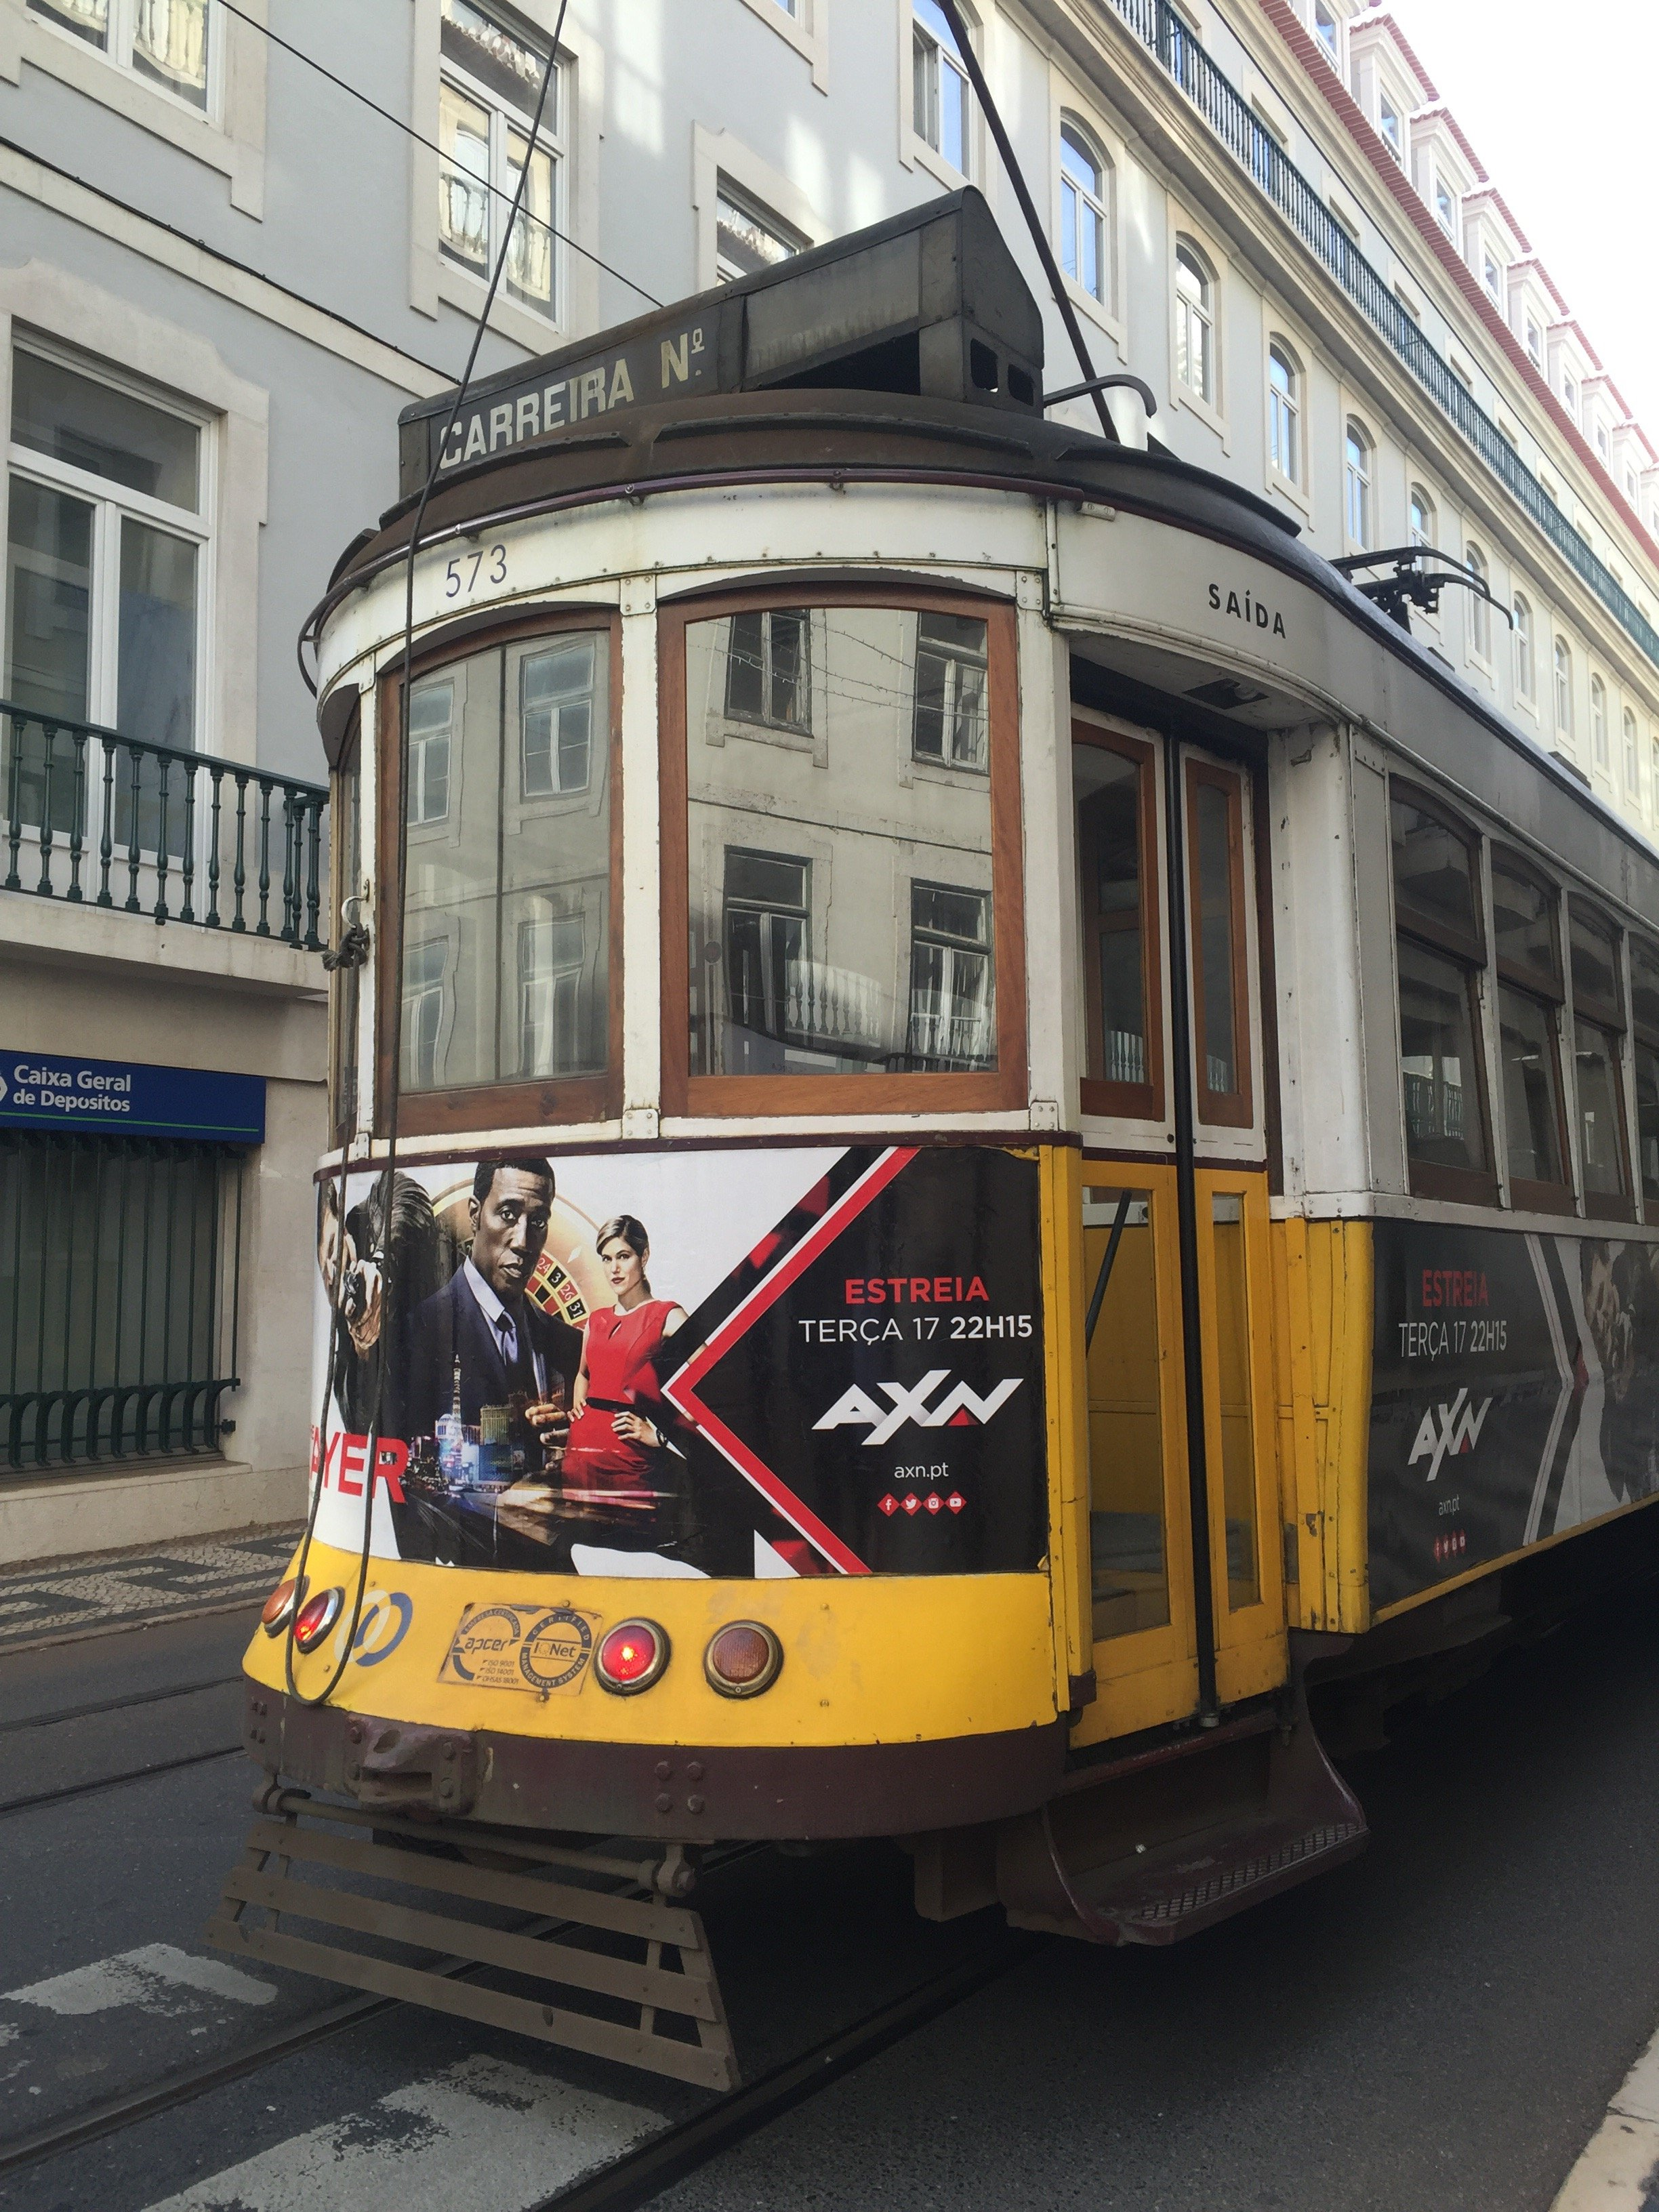 Top 5 things to do in Lisbon